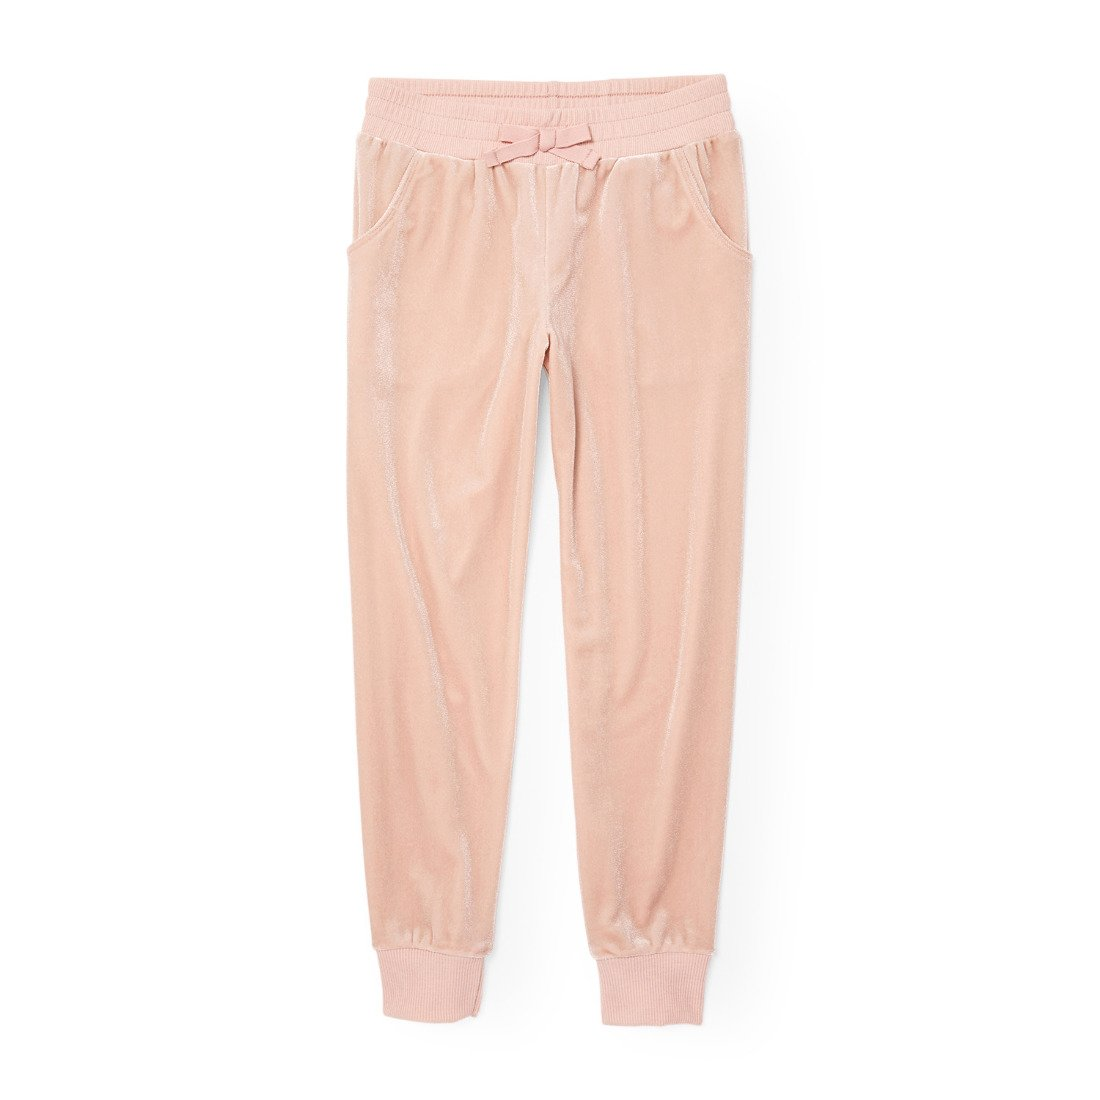 The Children's Place Big Girls' Casual Pants